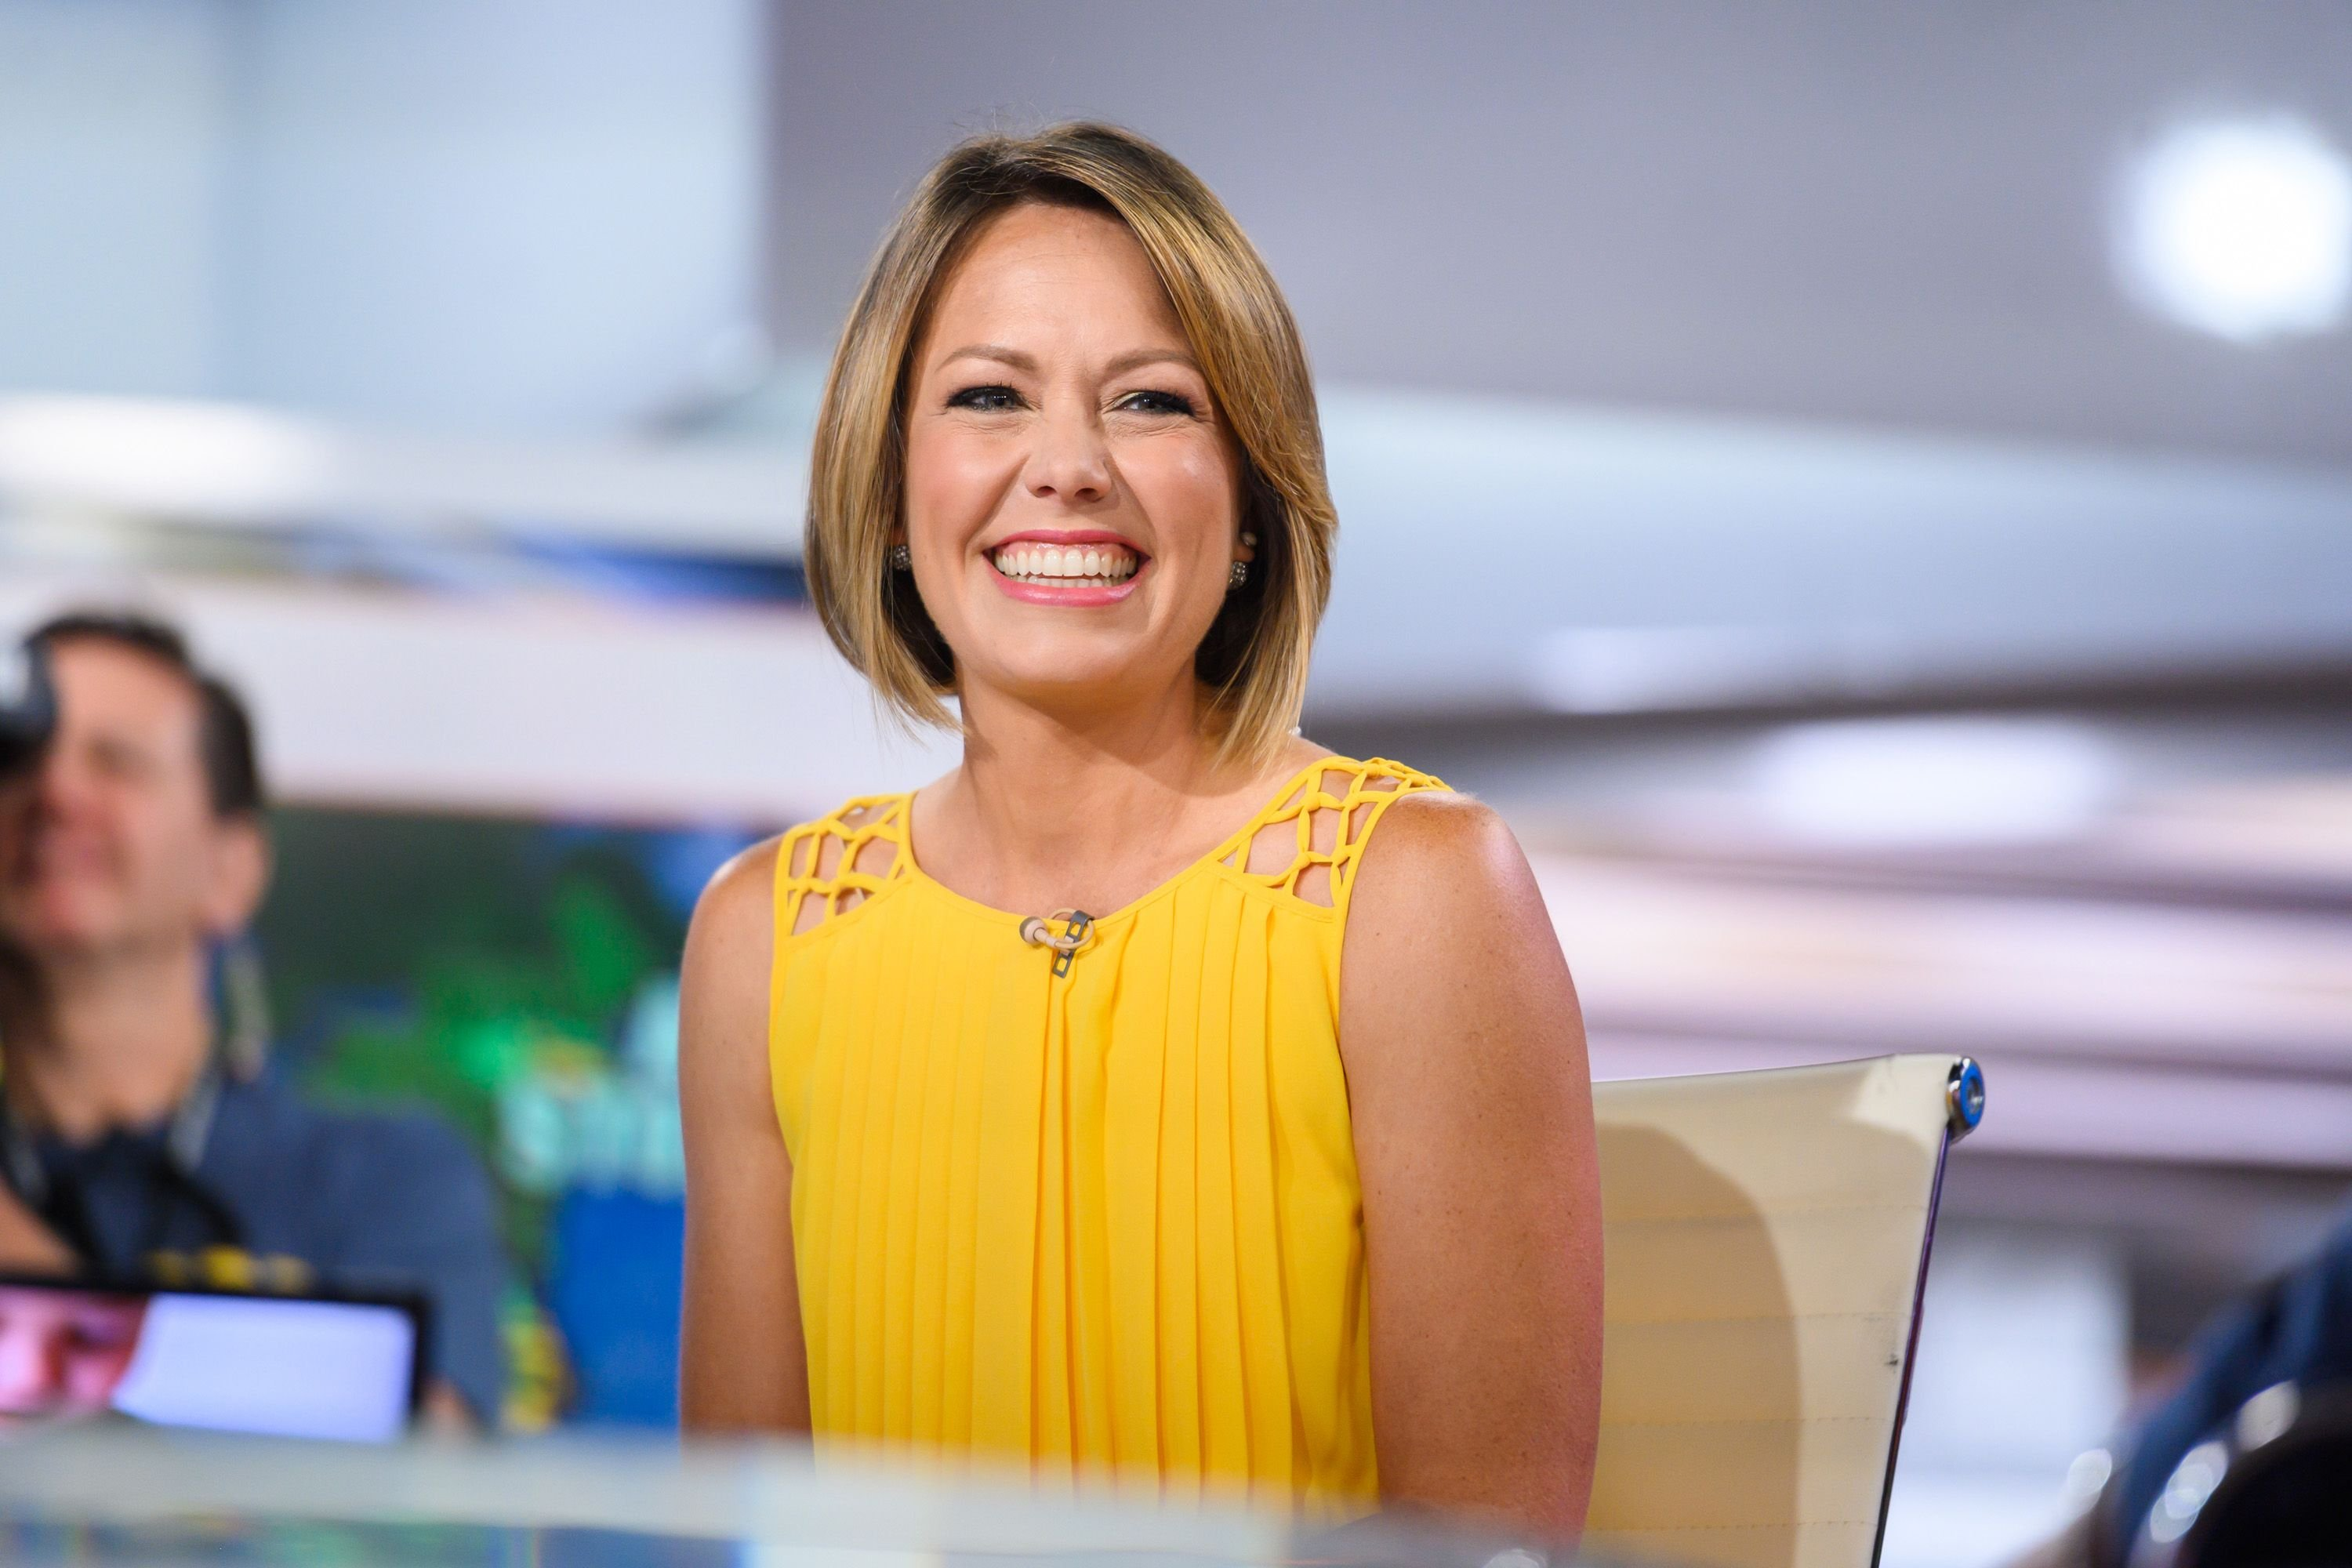 """Dylan Dreyer on season 68 of the """"Today"""" show on July 17, 2019 